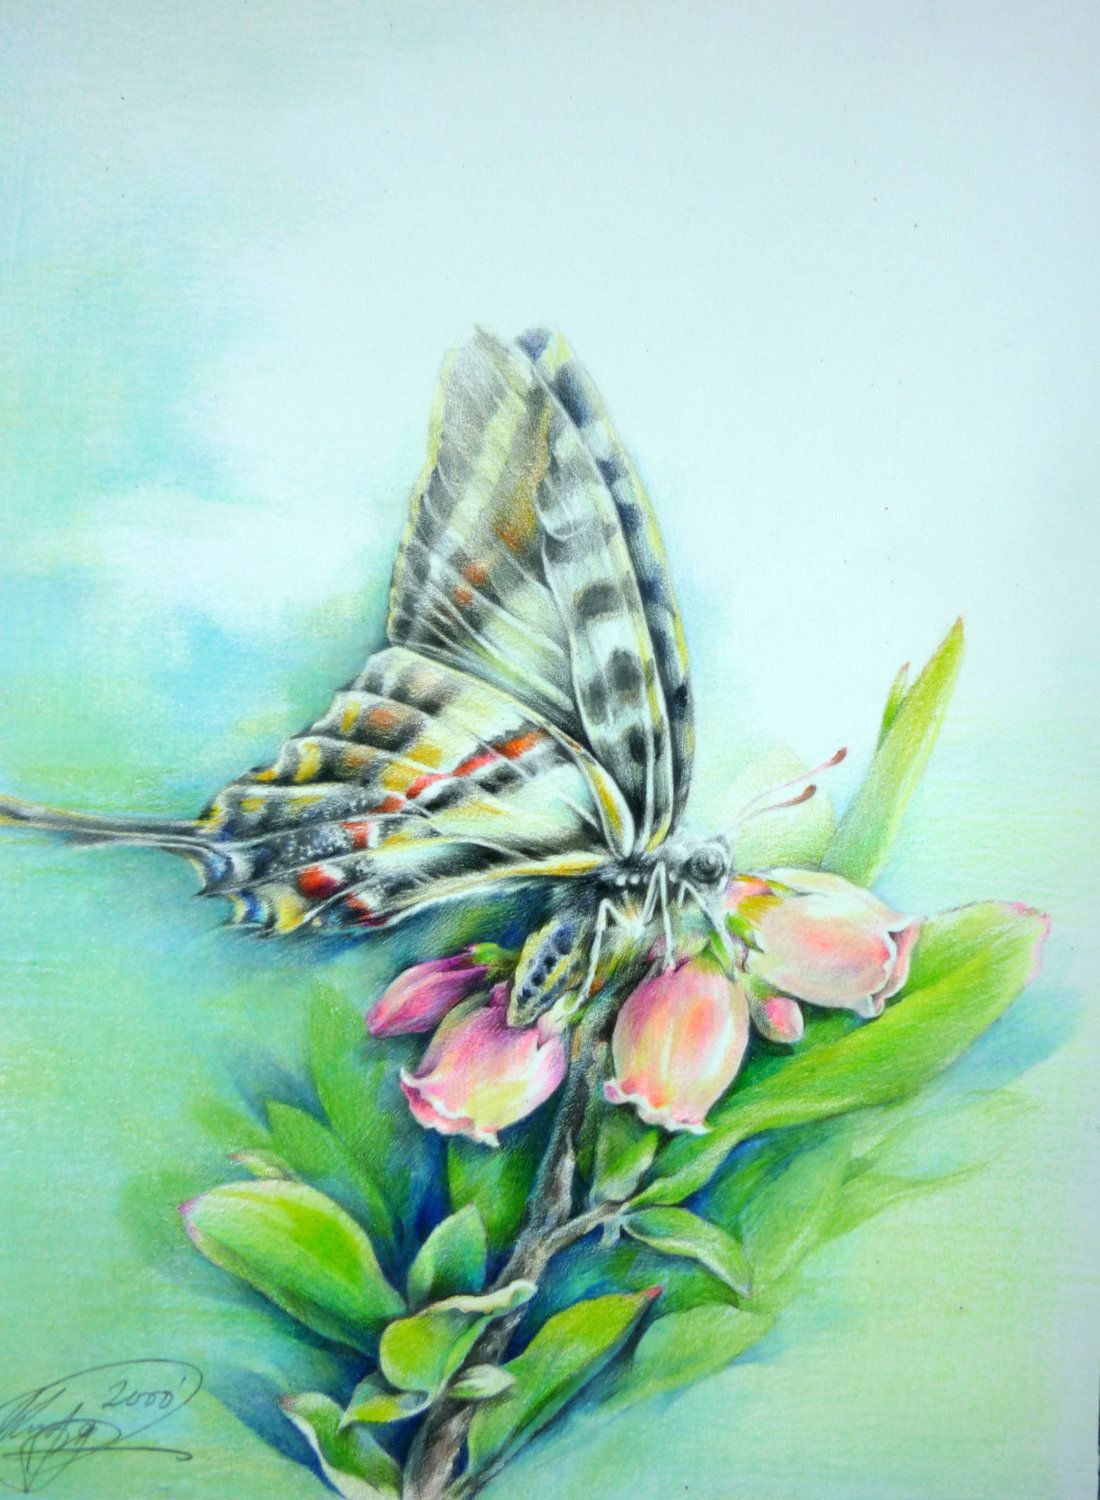 Color pencil drawings of Butterfly | ❖ Pencil Drawing ...